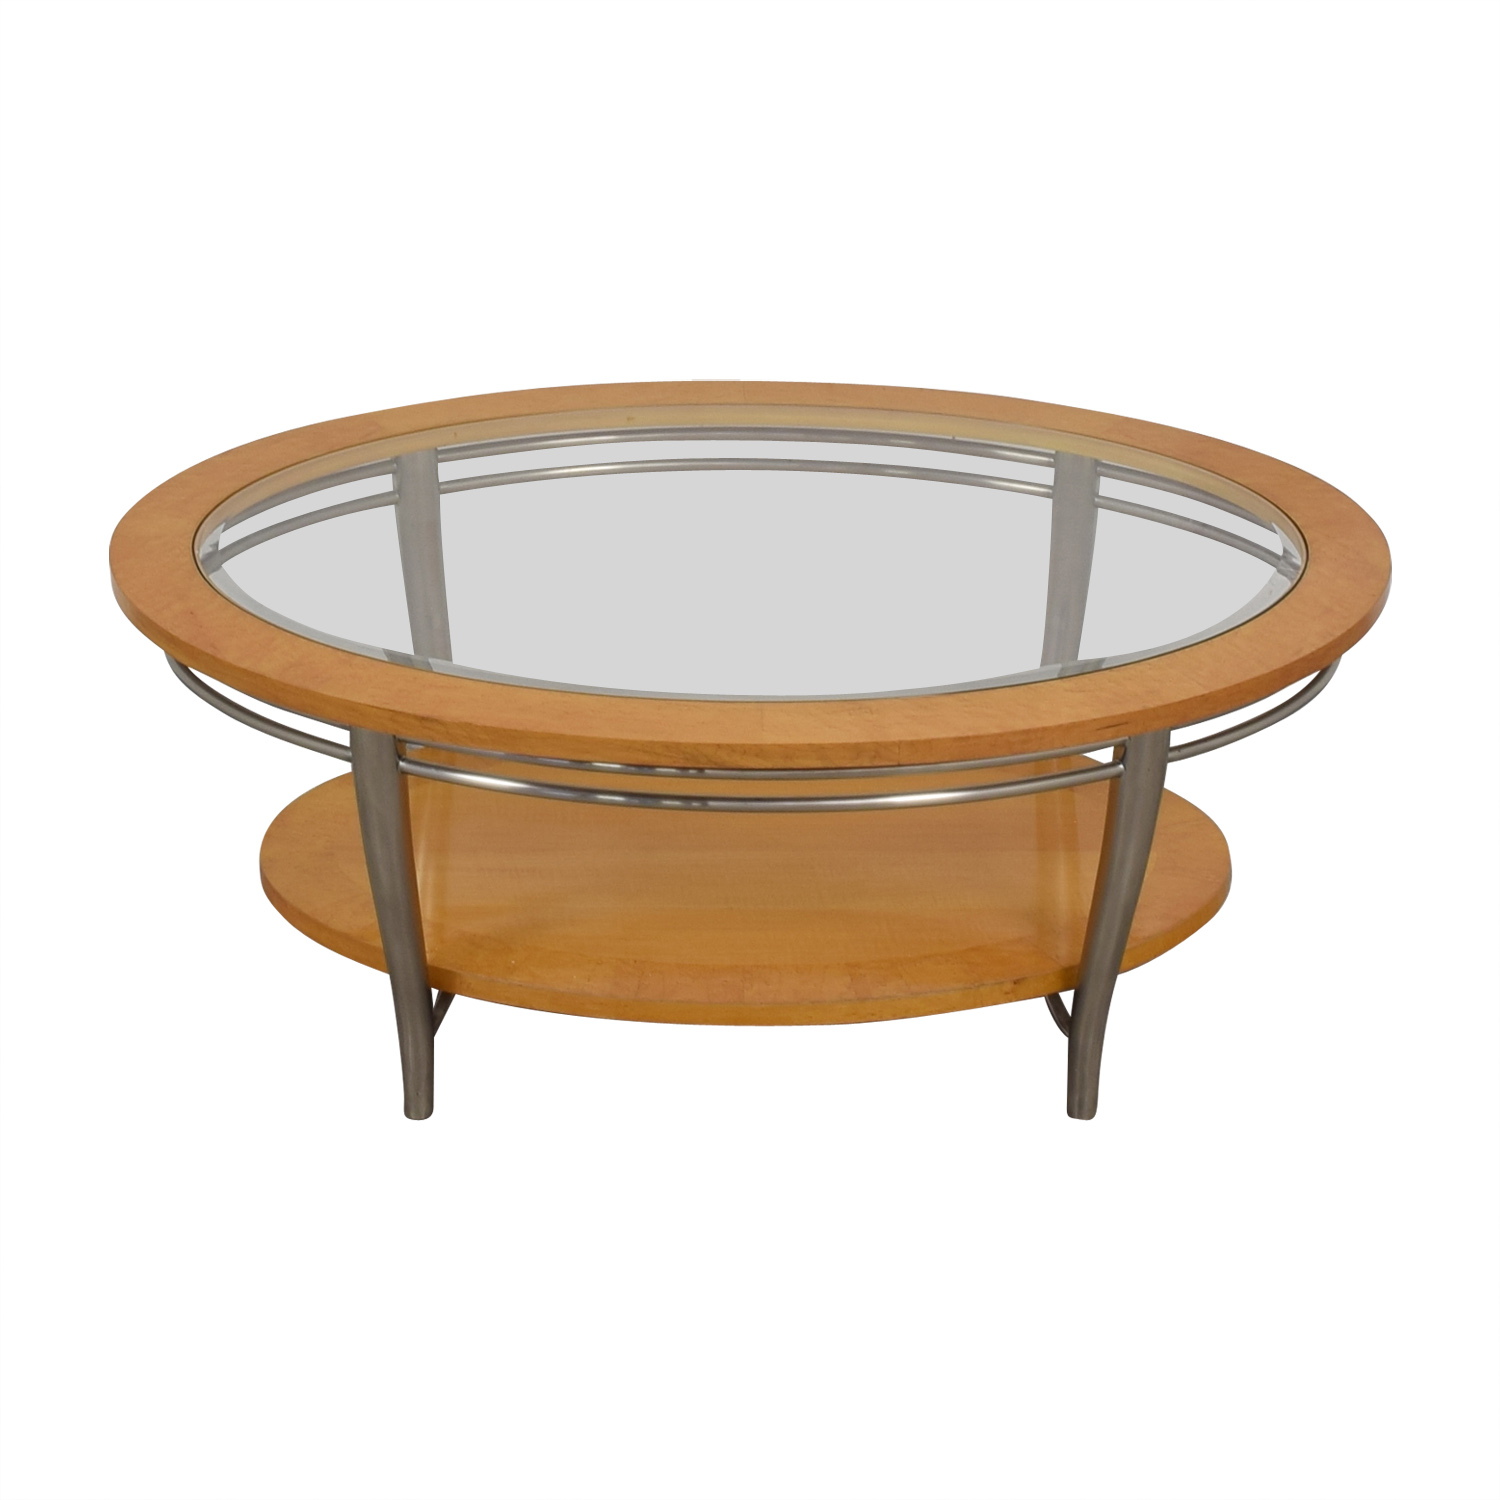 Bernhardt Bernhardt Wooden Oval Coffee Table coupon